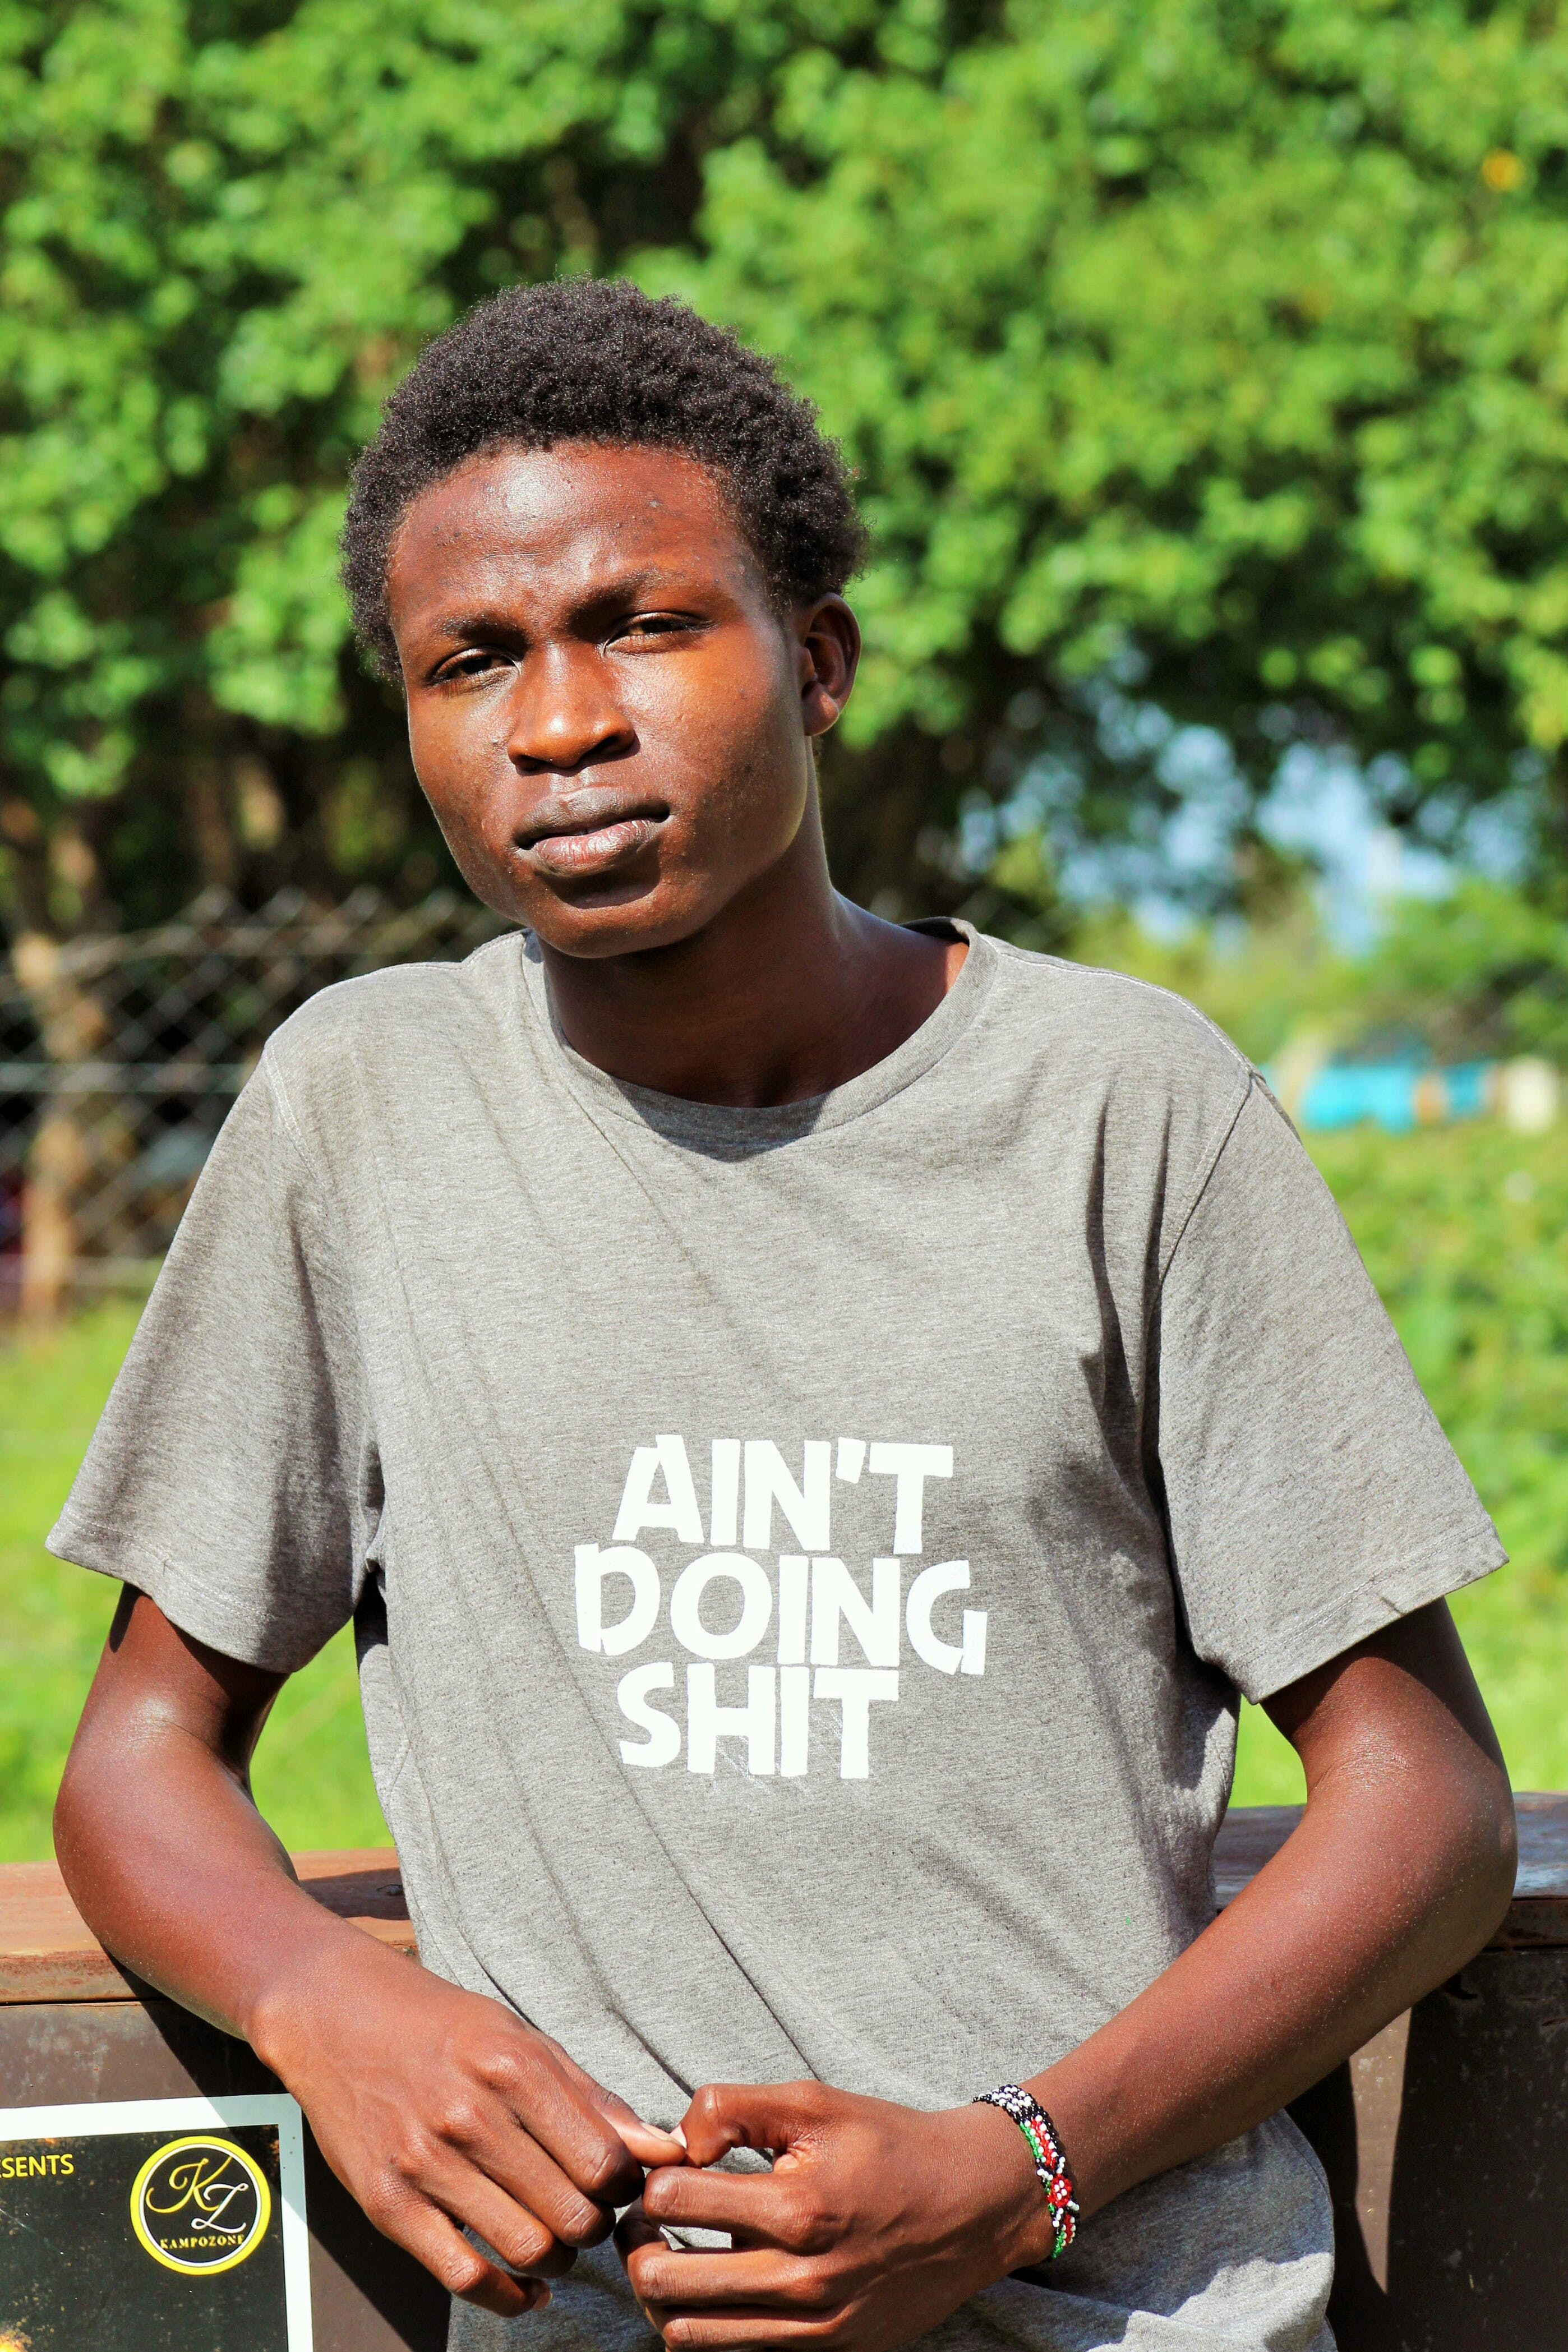 Free stock photo of african boy, Ain't doing shit, blur, gray